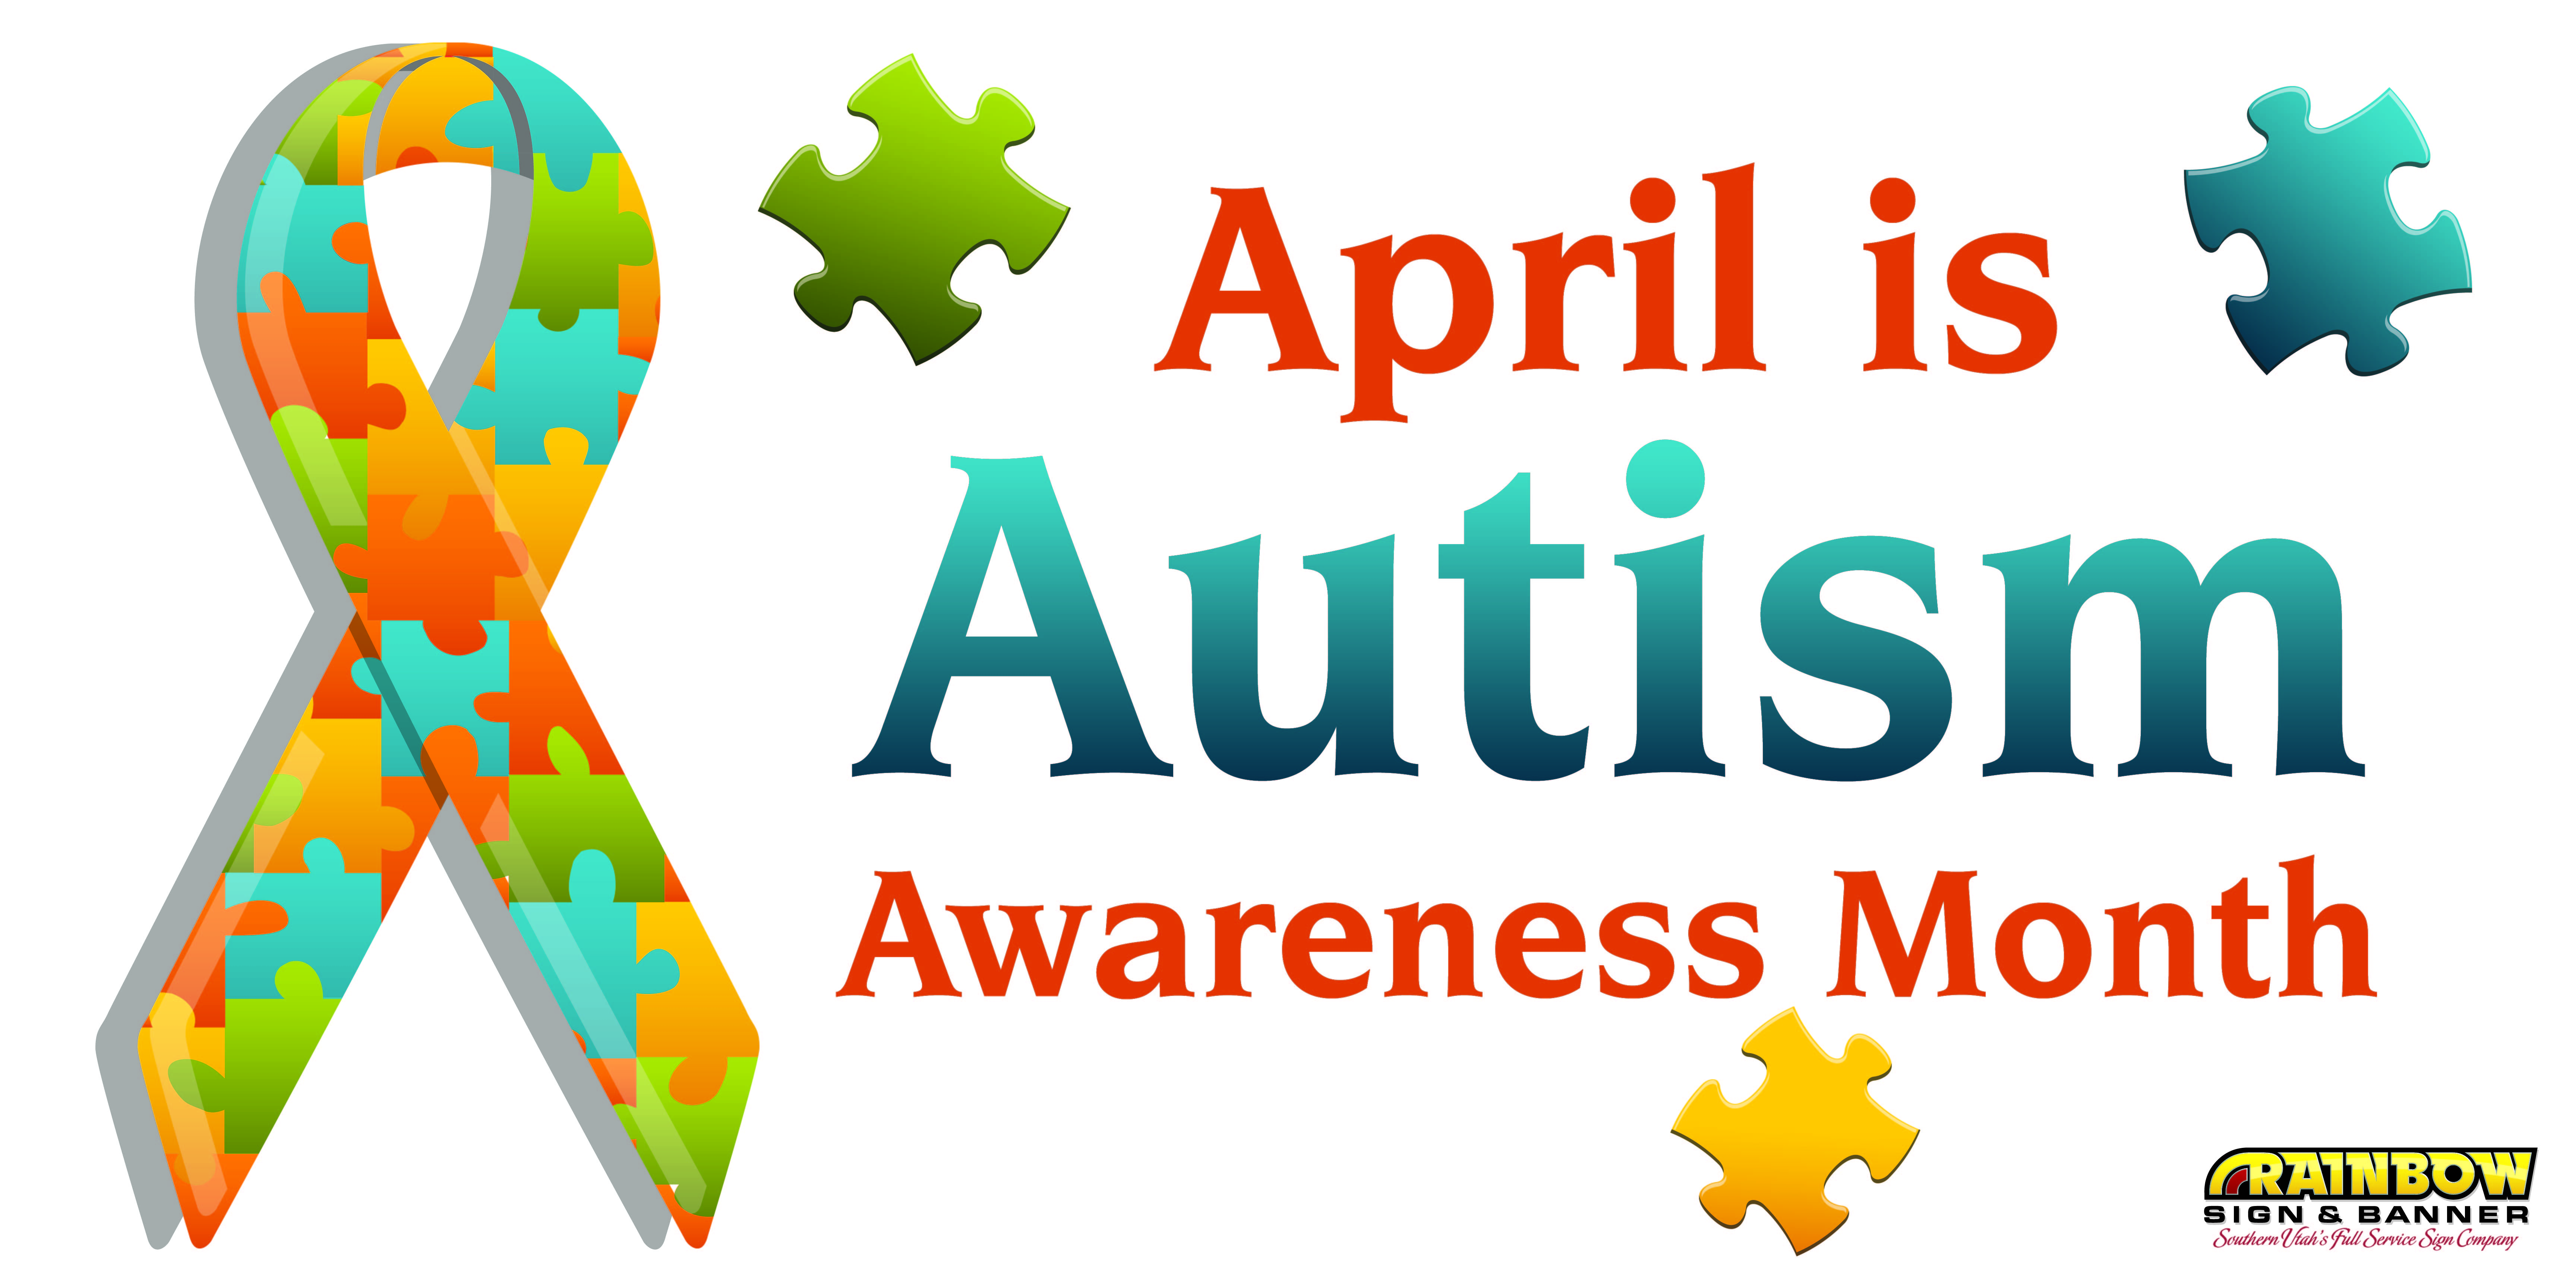 Autism Awareness Month Treatment Options for Autism Spectrum